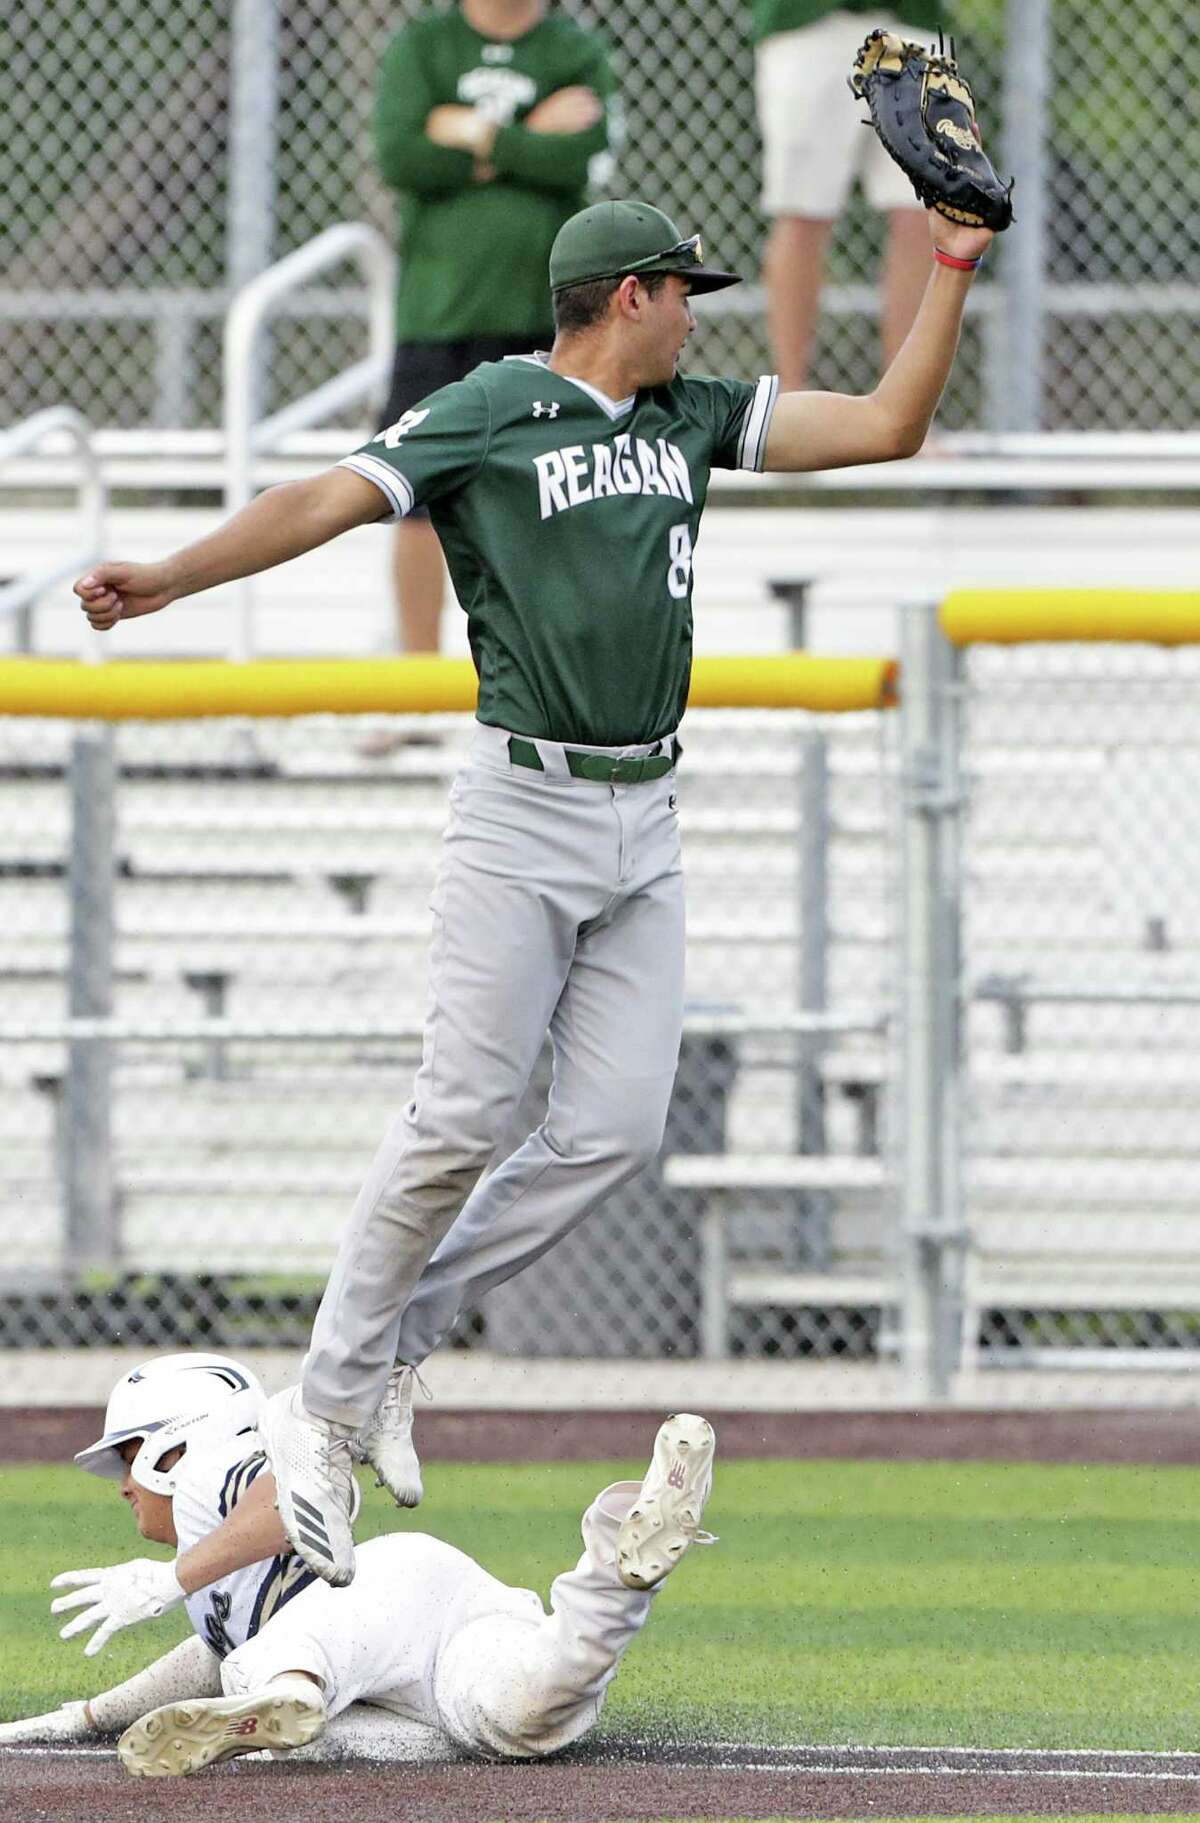 Rattler first baseman Cal Martin goes high but can only watch as a the throw from second gets away and allows the winning run in the last play of the game as Reagan plays Alexander in game 2 of the Class 6A Regional Semifinals at Cabaniss Field in Corpus Christi on May 24, 2019.